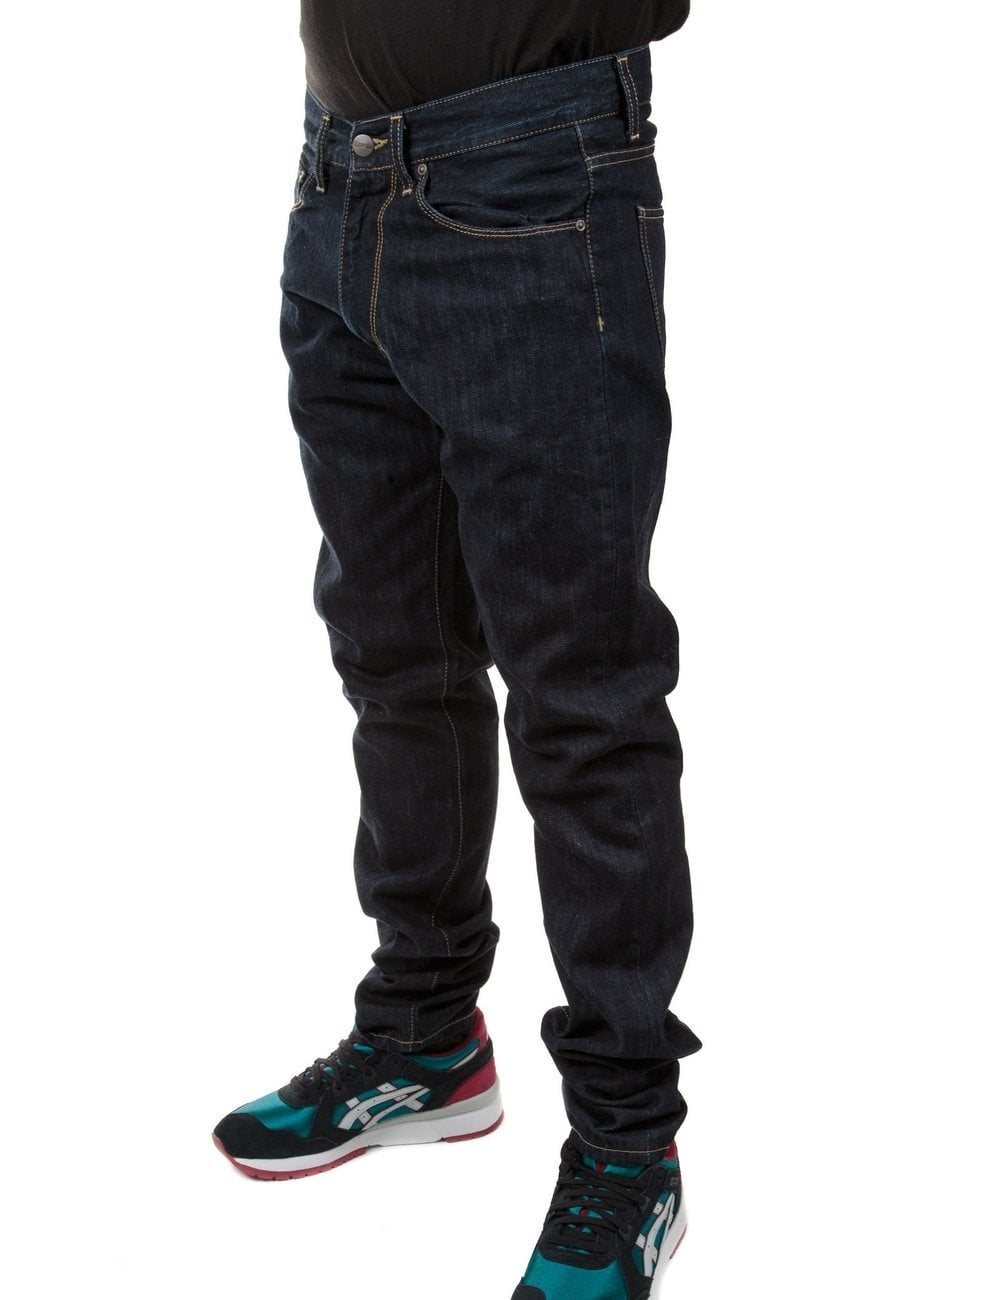 f7dbb3de Carhartt WIP Vicious Pant - Blue Rinsed (Merced Denim) - Clothing ...